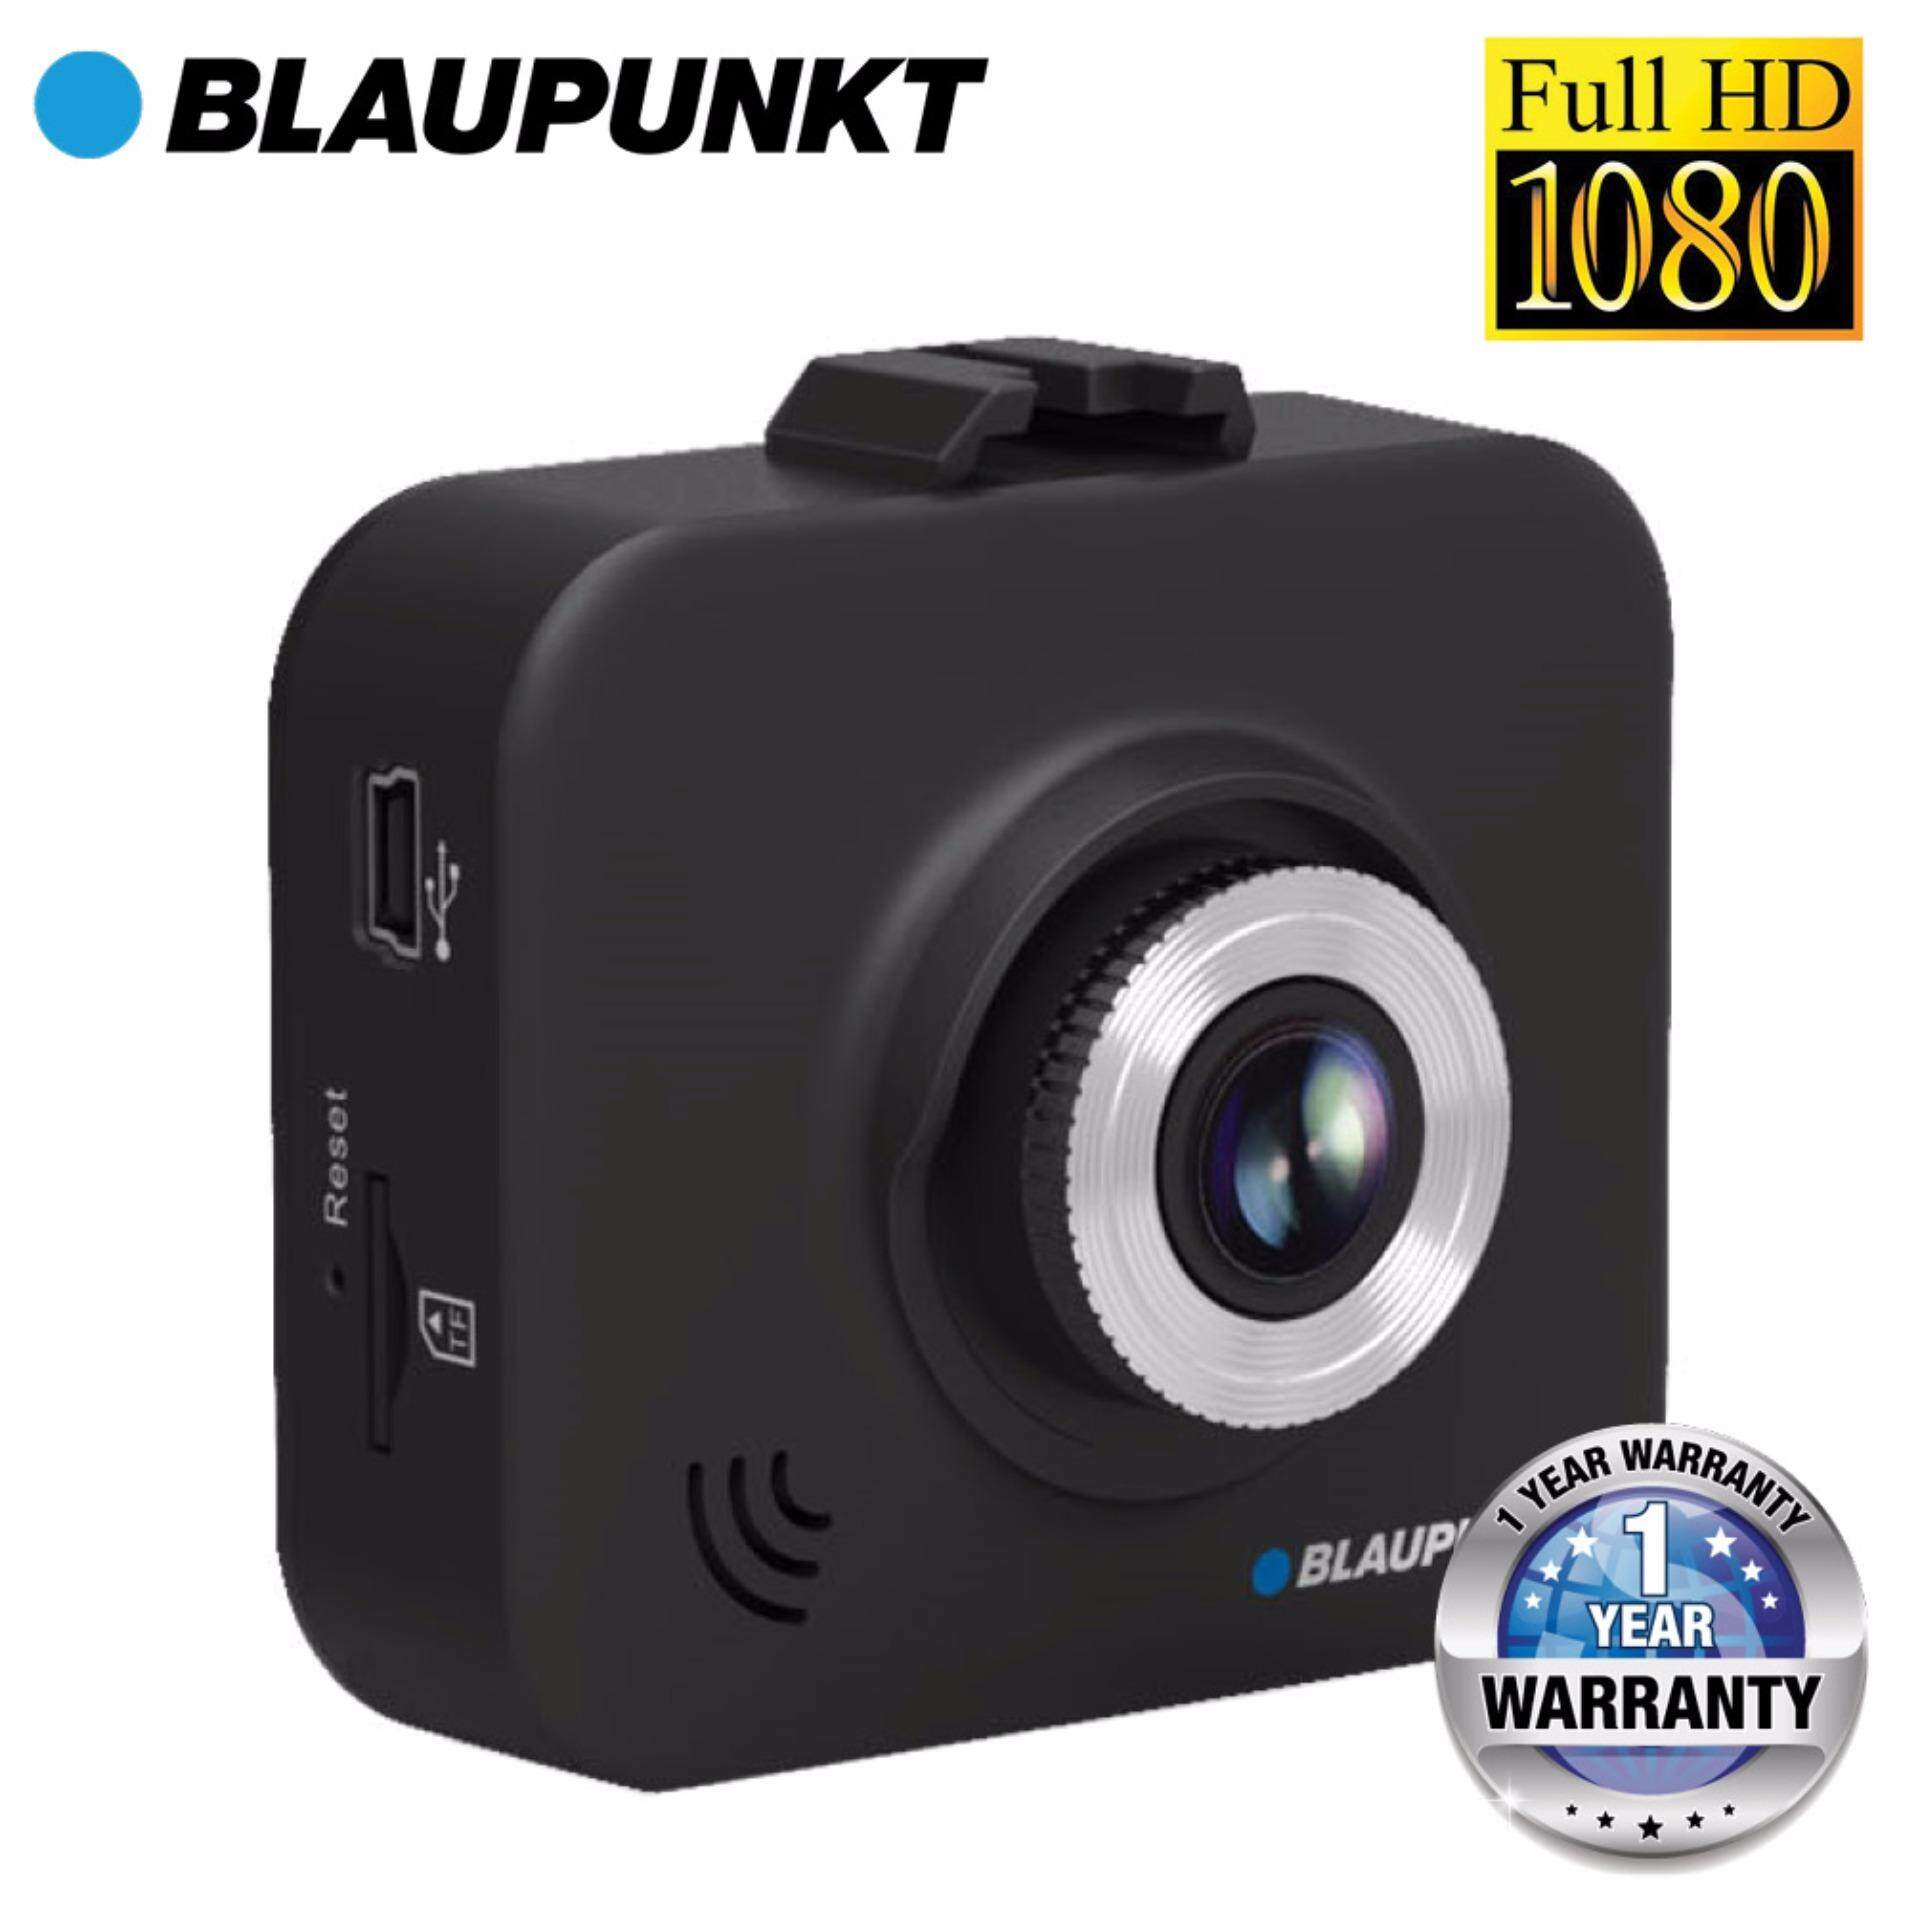 BLAUPUNKT DVR BP-2.0 FHD with 2-inch LCD Display, Built-in Microphone & Speaker